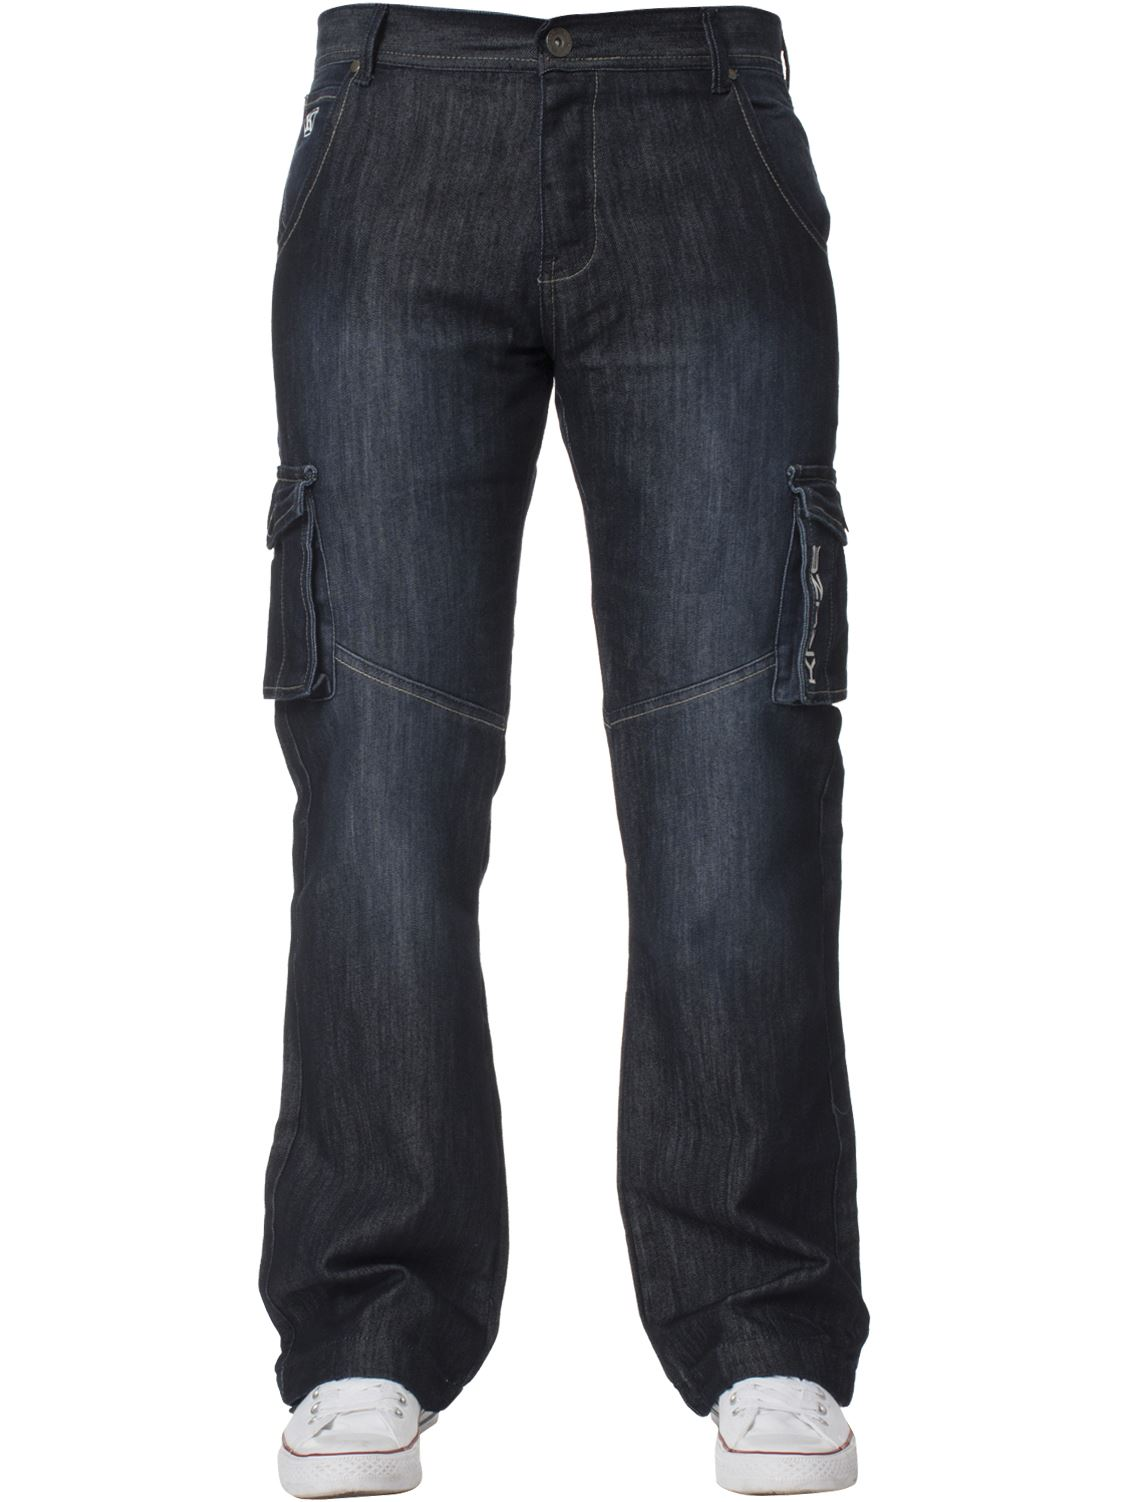 KRUZE-Mens-Combat-Jeans-Casual-Cargo-Work-Pants-Denim-Trousers-All-Waist-Sizes thumbnail 19